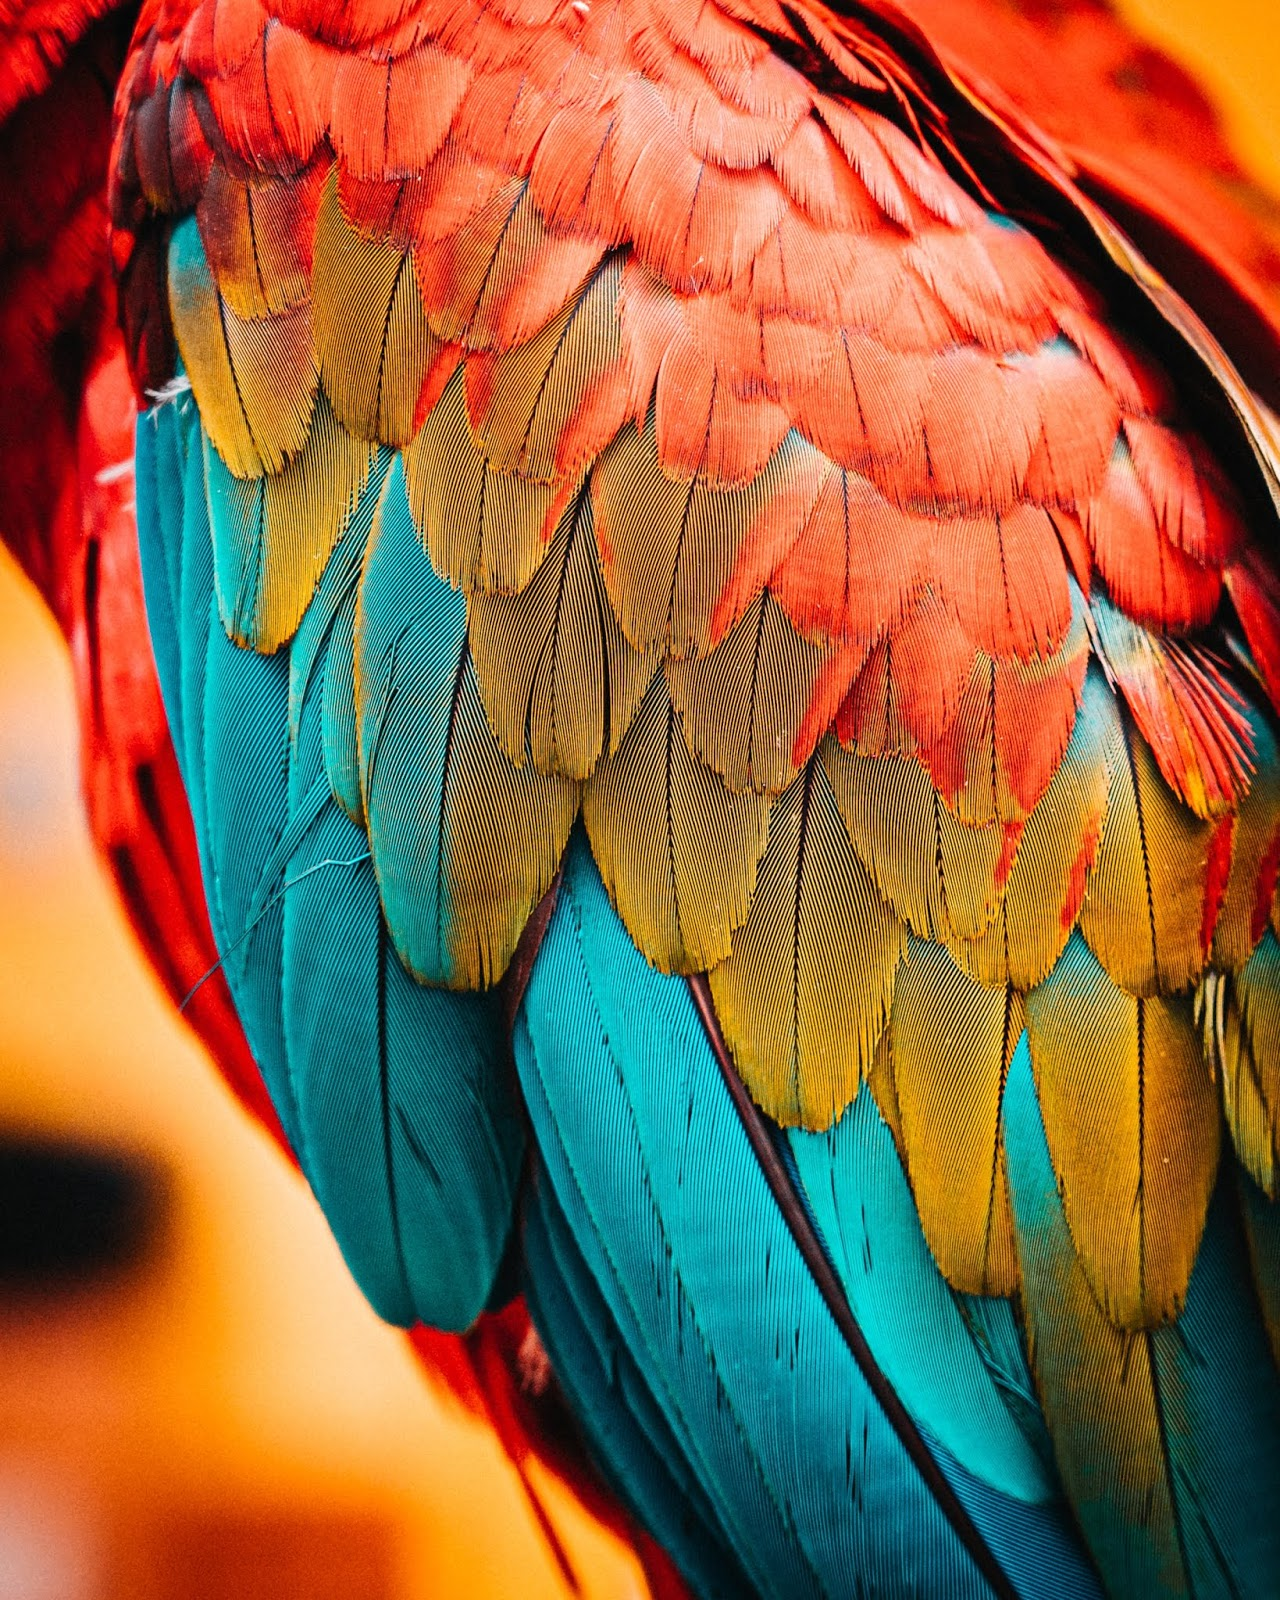 macaw feathers ultra hd picture to use as background wallpaper for phone